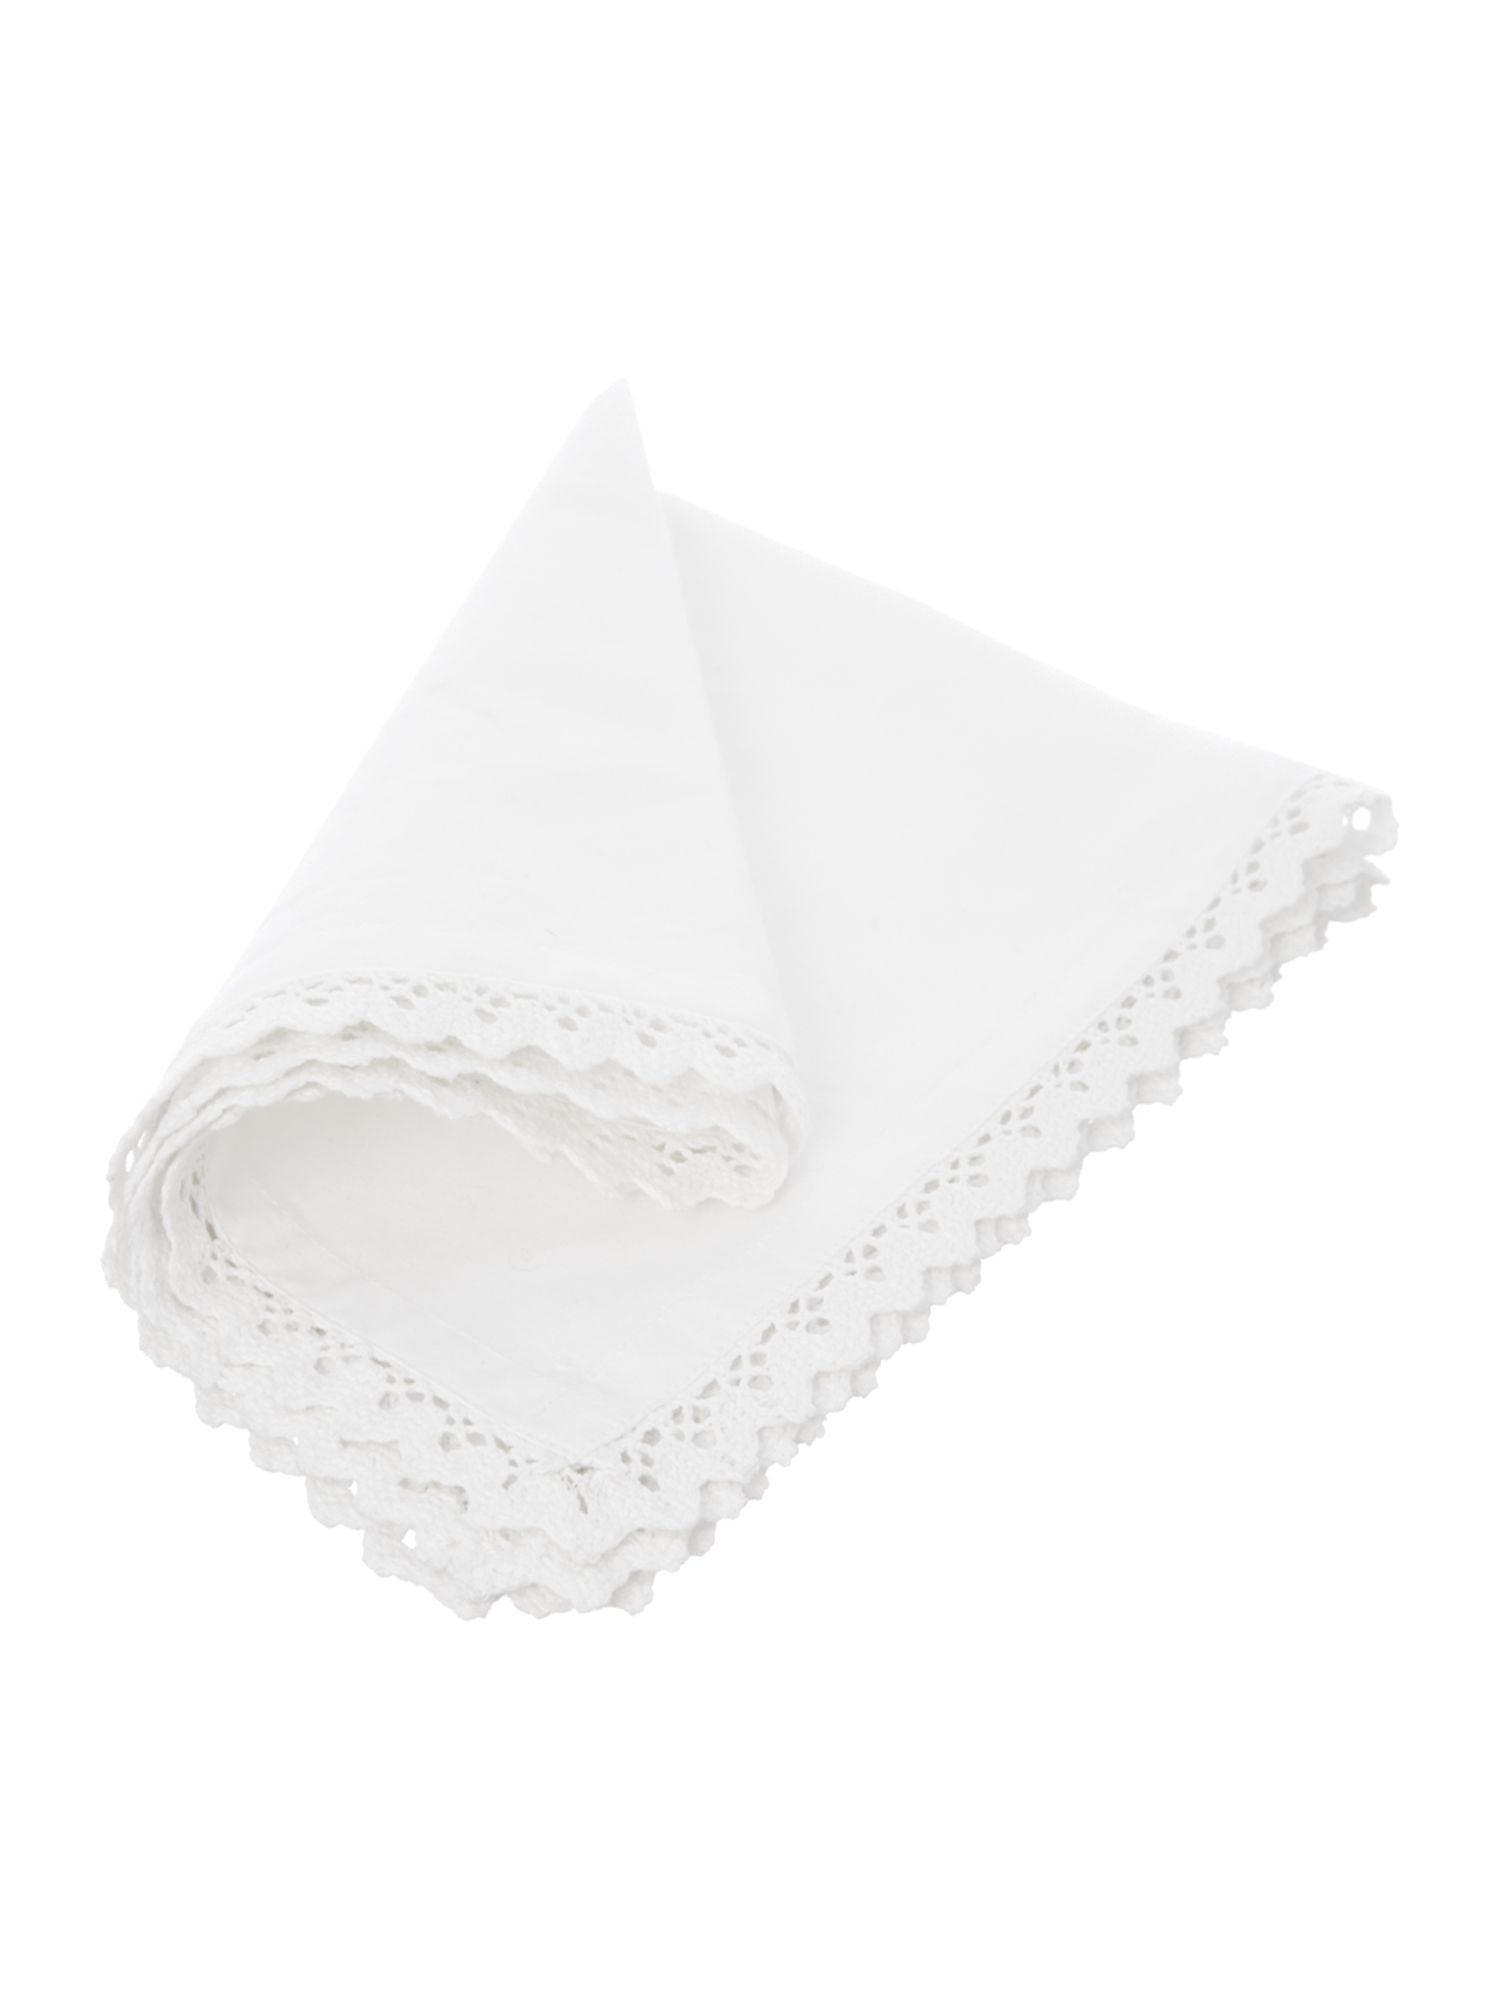 White Lace napkin set of 4